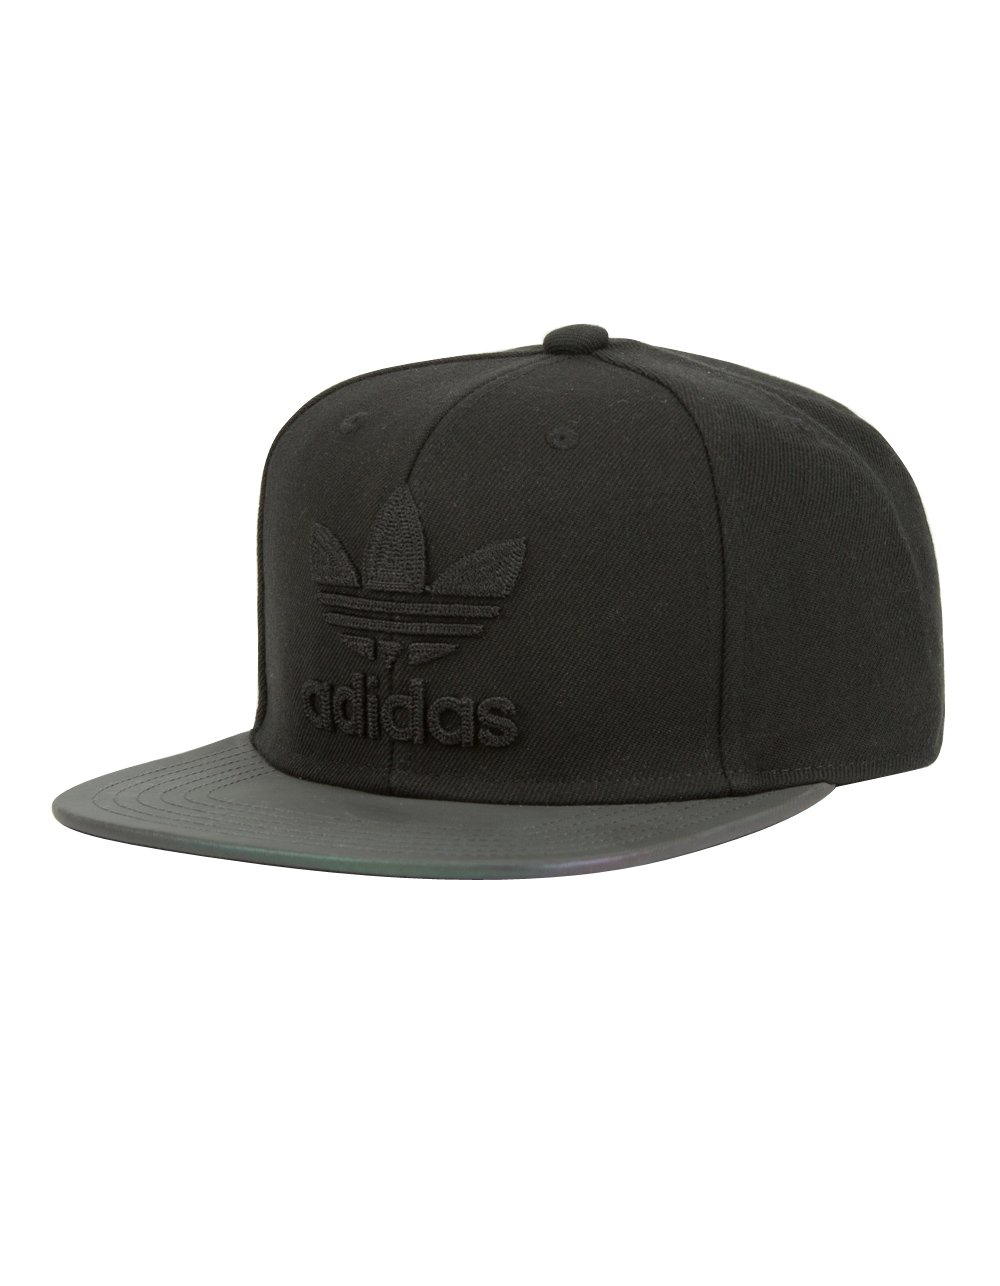 77c4e8712faf3 ... clearance adidas originals mens thrasher xeno snapback hat black b79319  amazon sports outdoors b2b61 f86ed ...